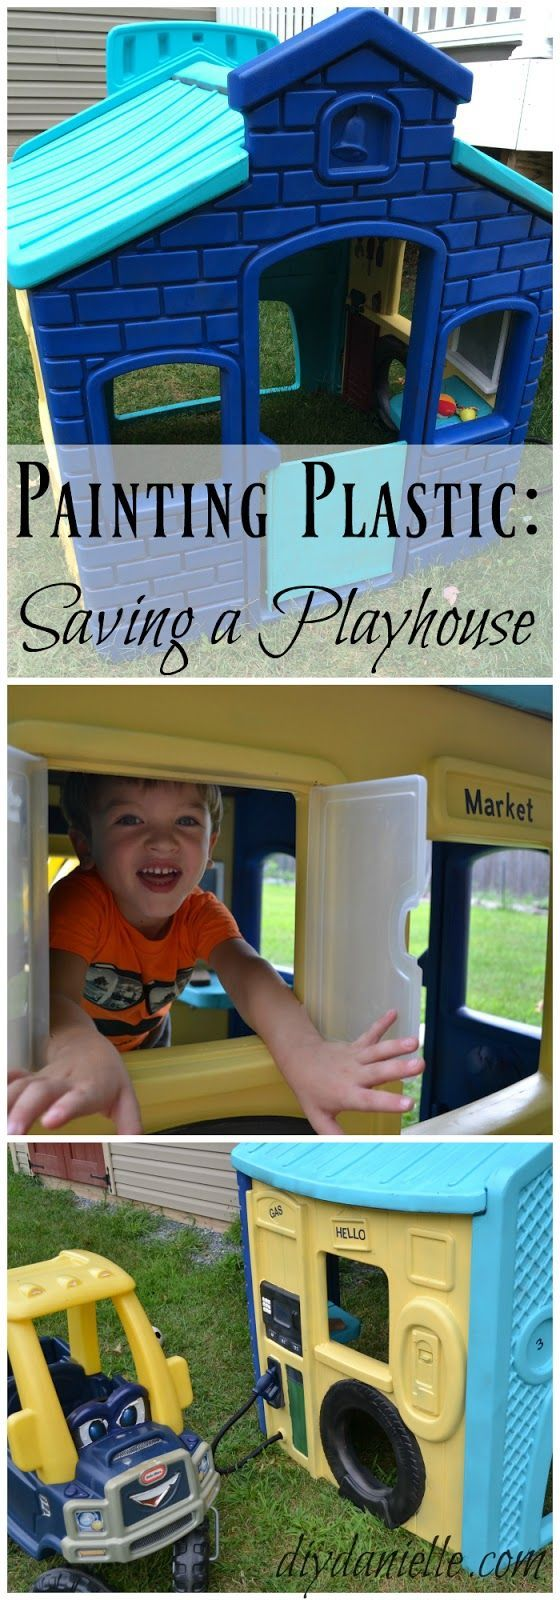 How to paint a plastic playhouse to customize it. A simple paint job saved this one from a landfill!